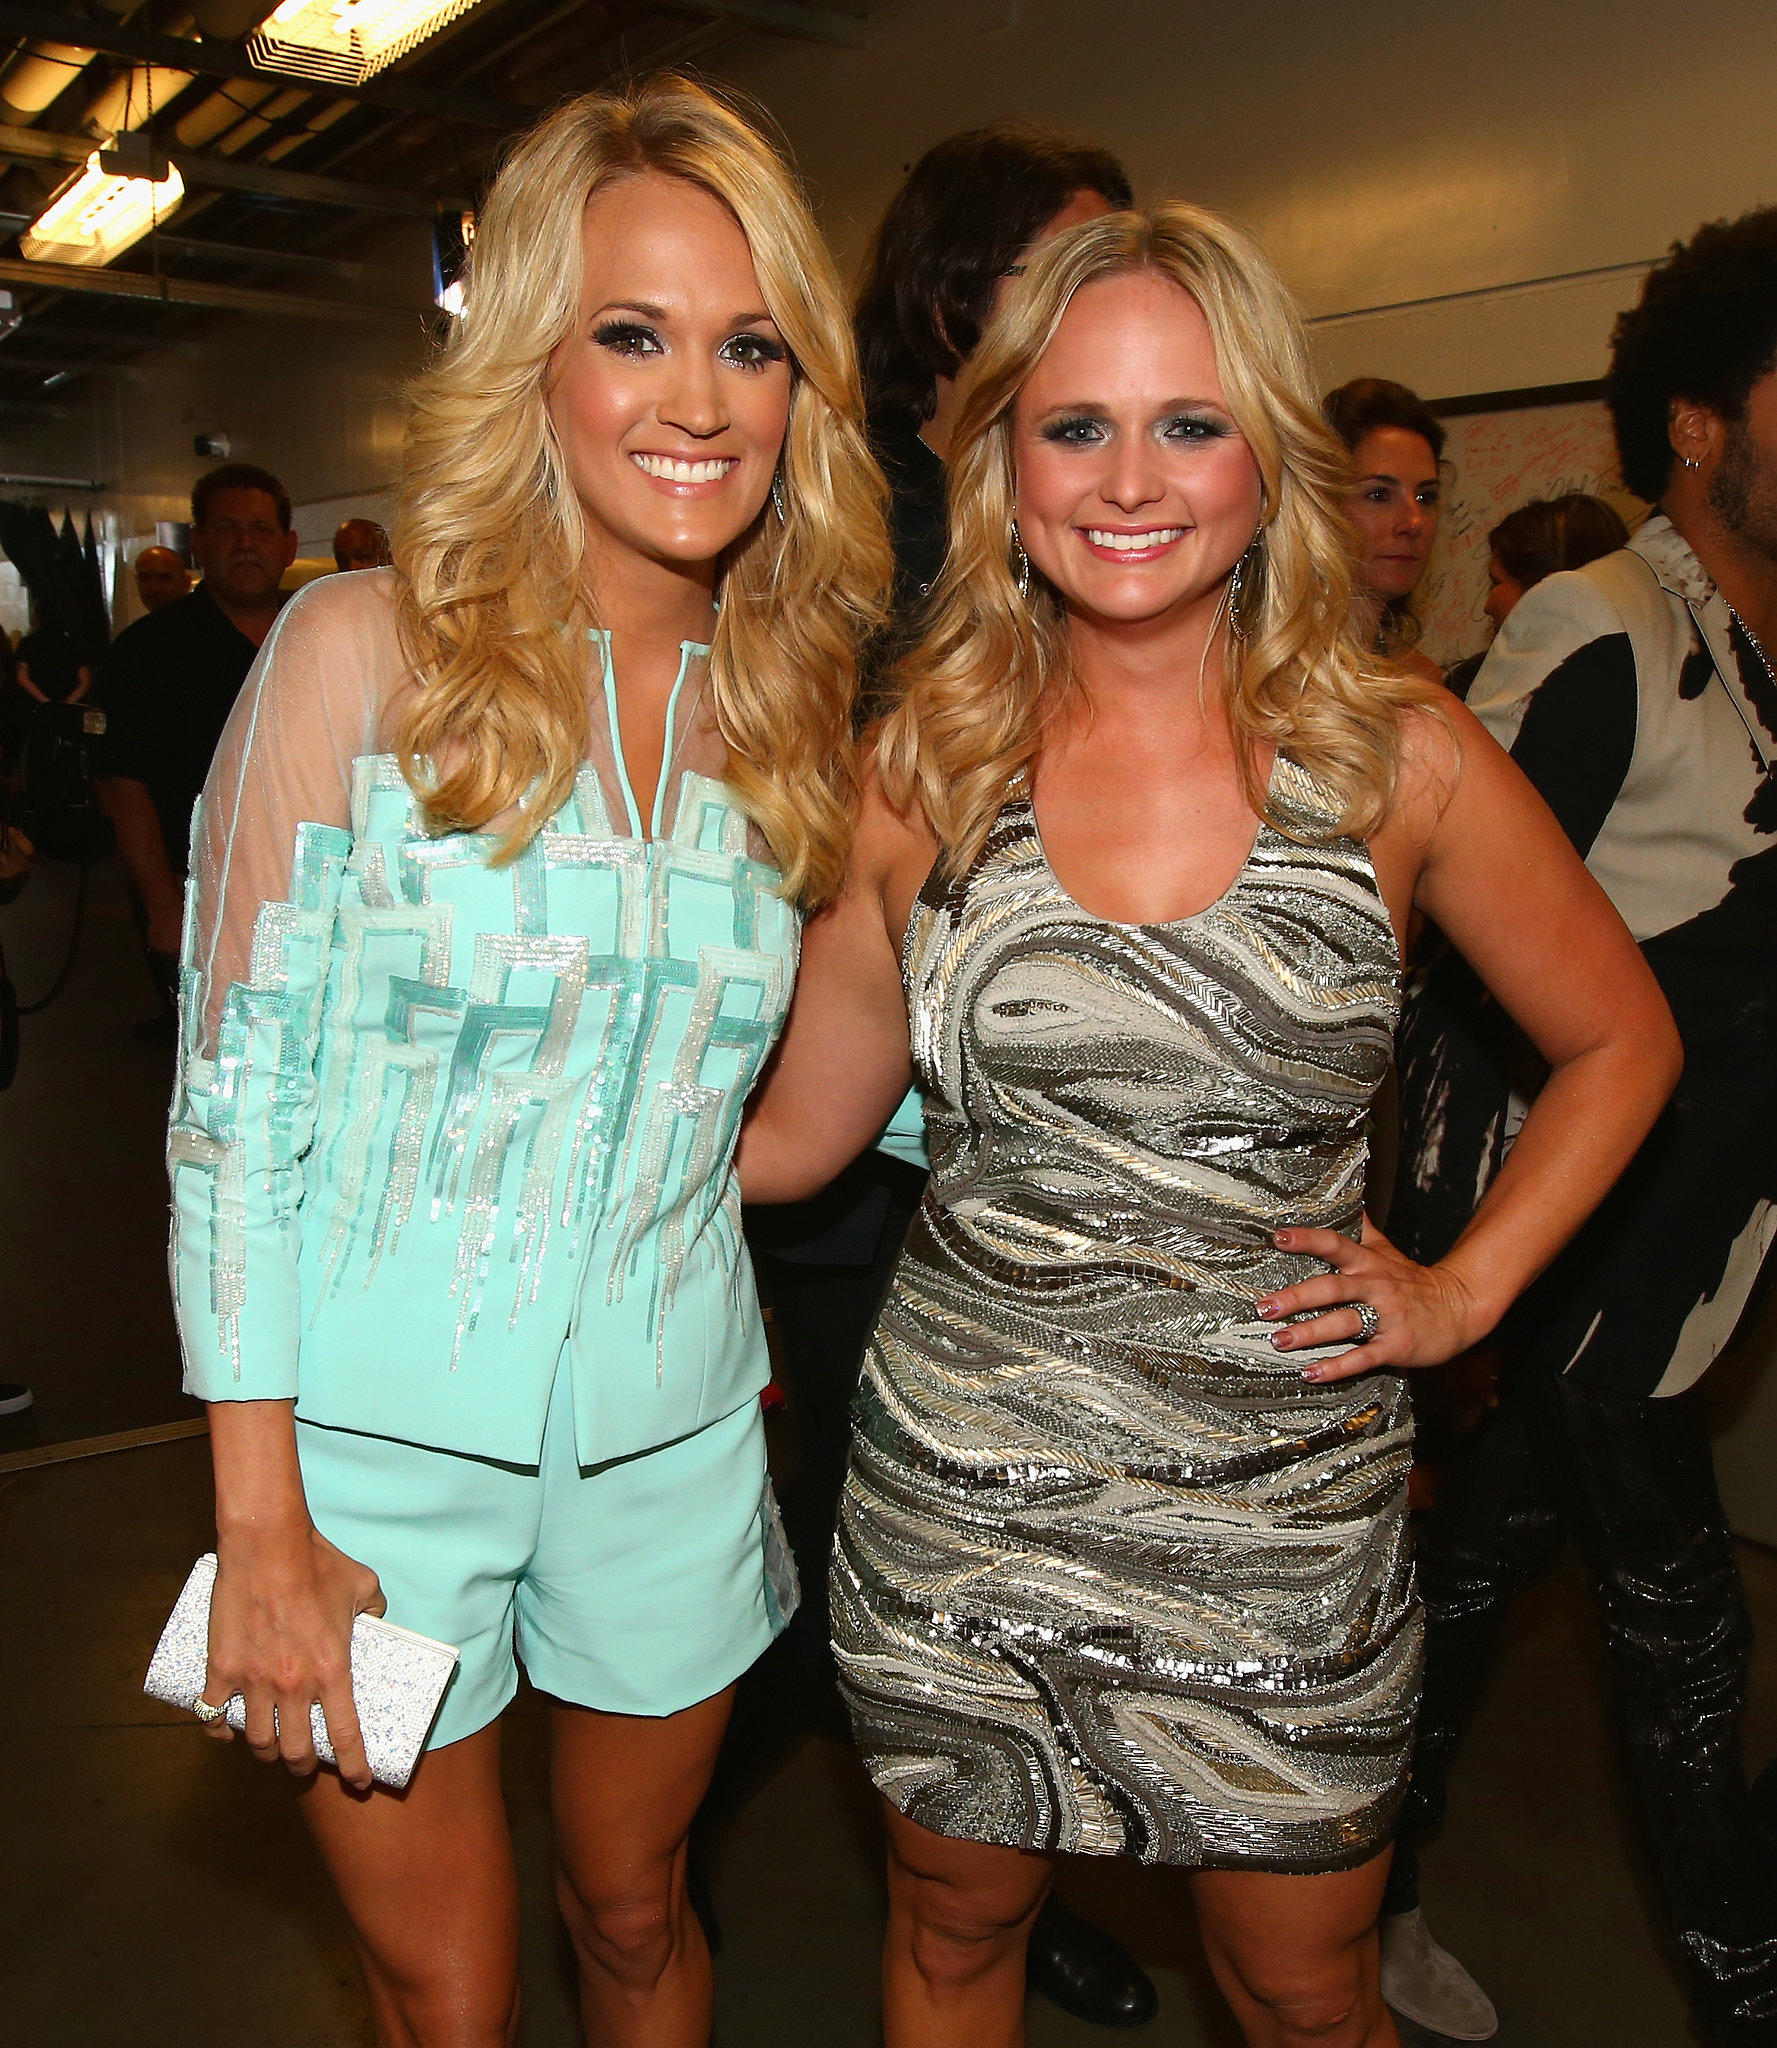 Carrie Underwood And Miranda Lambert Posed Together